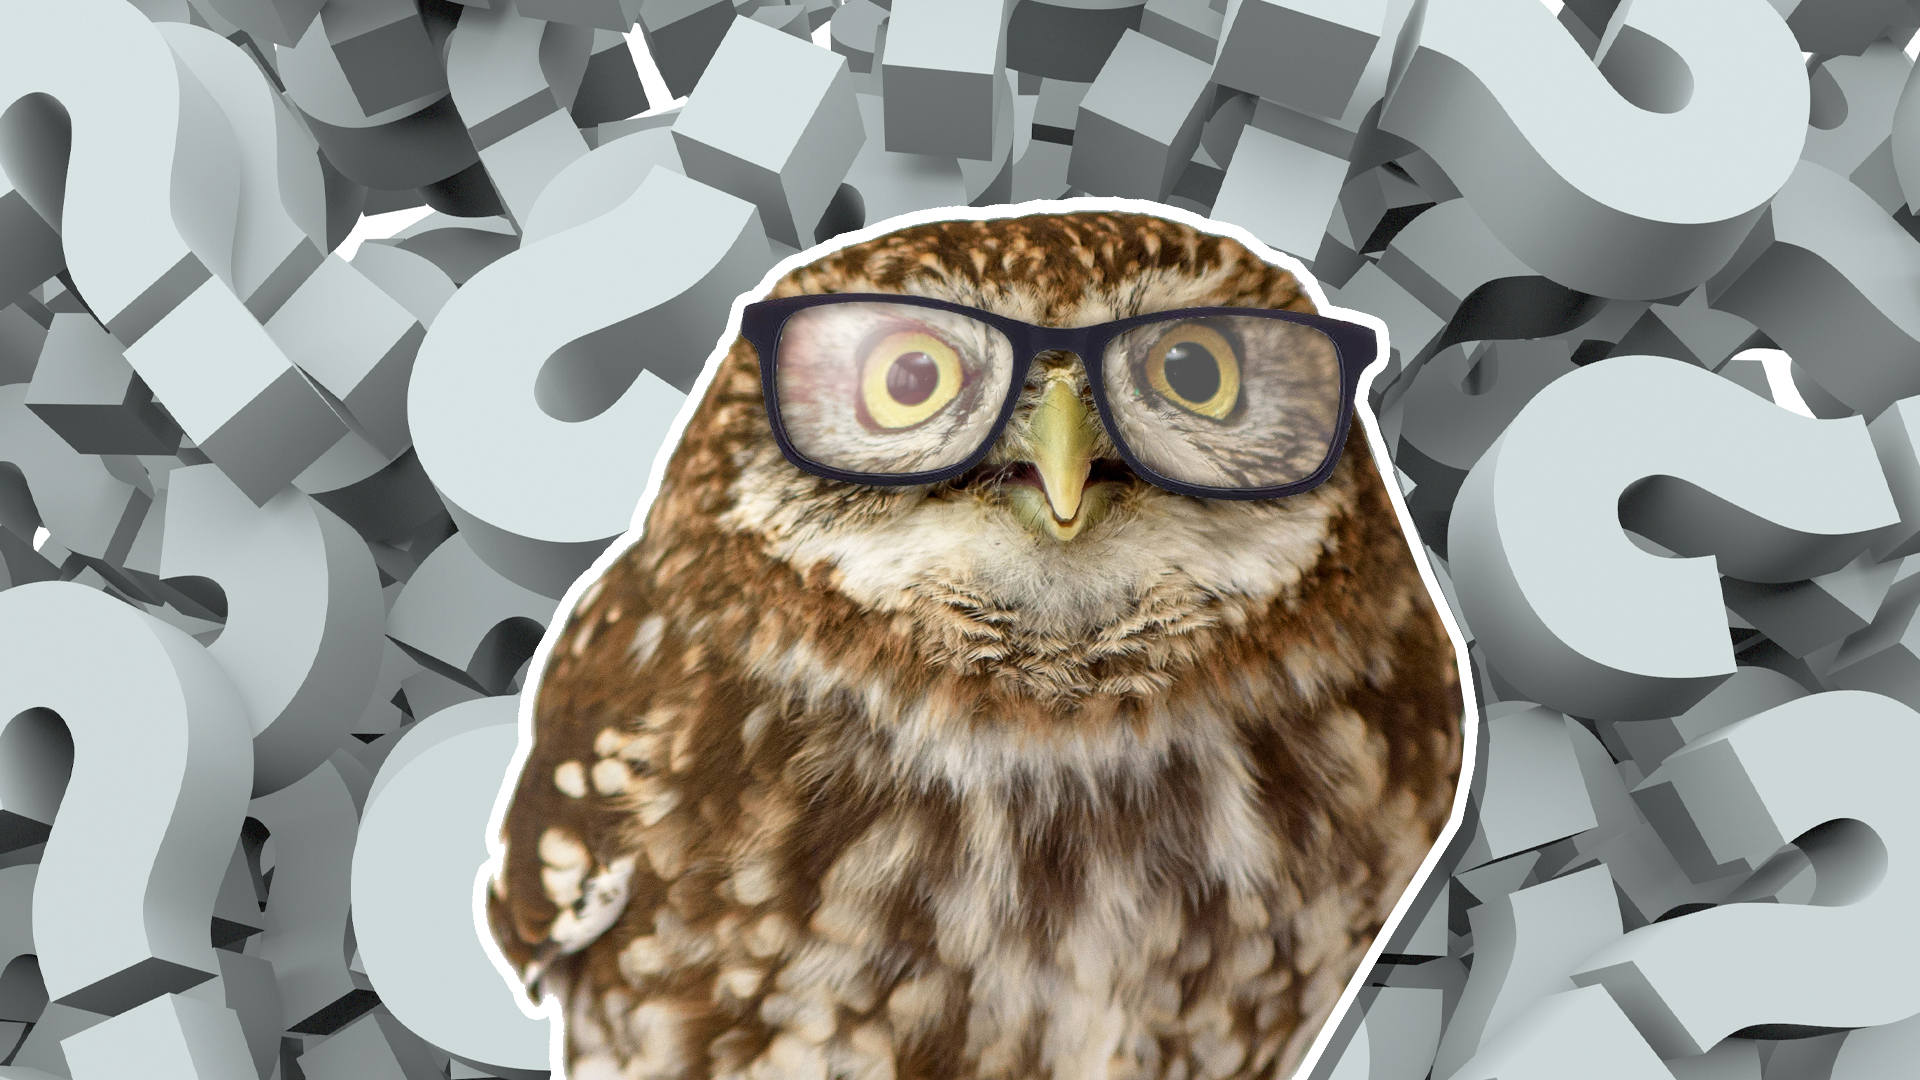 A clever owl